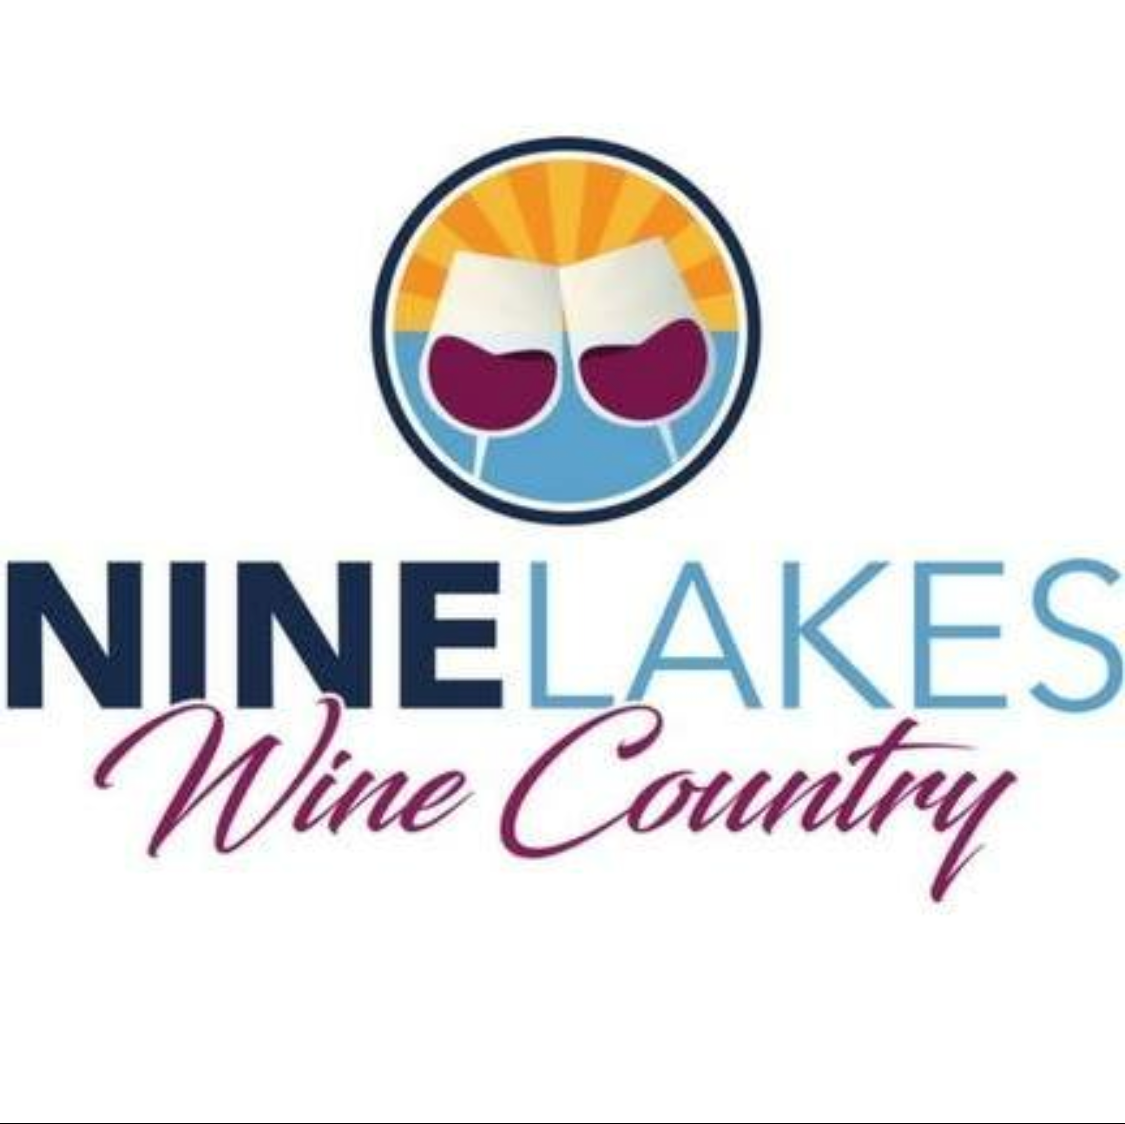 Nine Lakes Wine Country - Nine Lakes Wine Country and Nine Lakes Wine Festival are sponsored by the Appalachian Region Wine Producers Association, formed in 2015 to promote the common interest of its members in the grape and wine industry in the Nine Lakes Region of East Tennessee.  Their work centers around: Growing TN Agriculture, Establishing Identity for Our Wines, Promoting Quality and Teamwork, Promoting Long-Term Investment, Promoting Regional Tourism, and Supporting Community Causes.